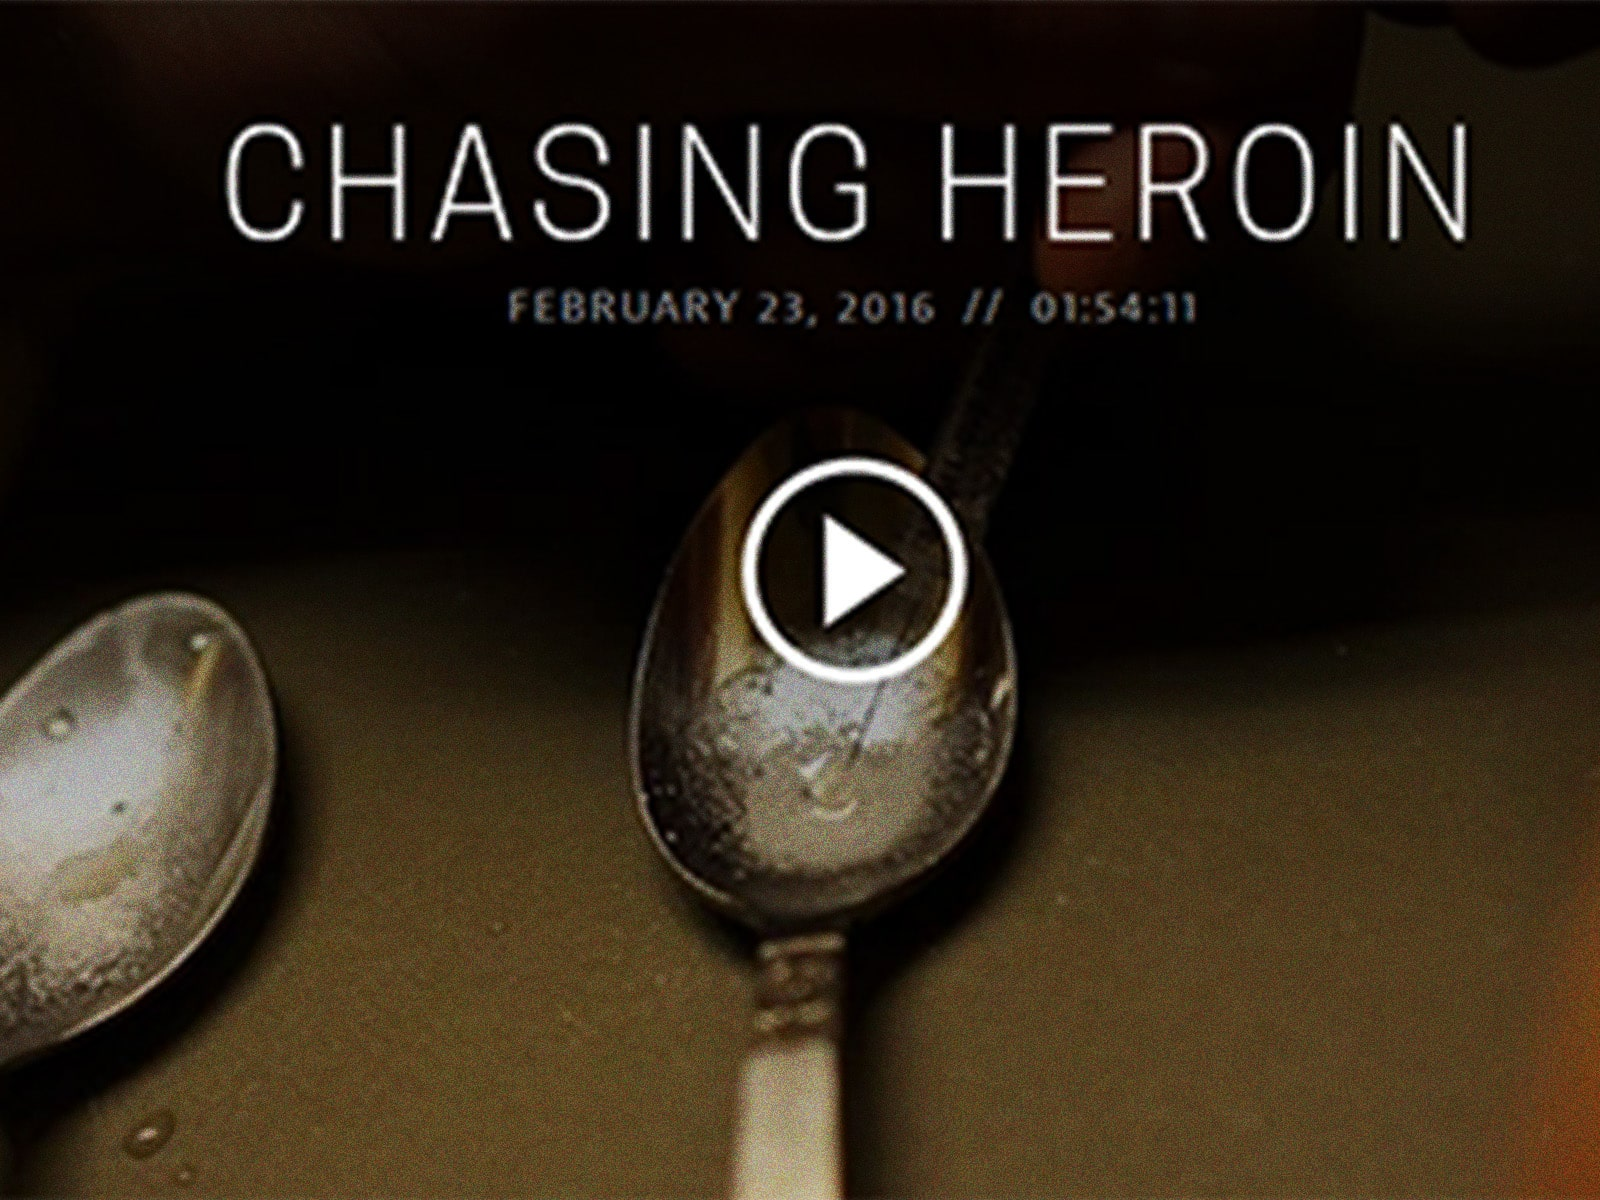 Chasing Heroin - Freedom From Addiction